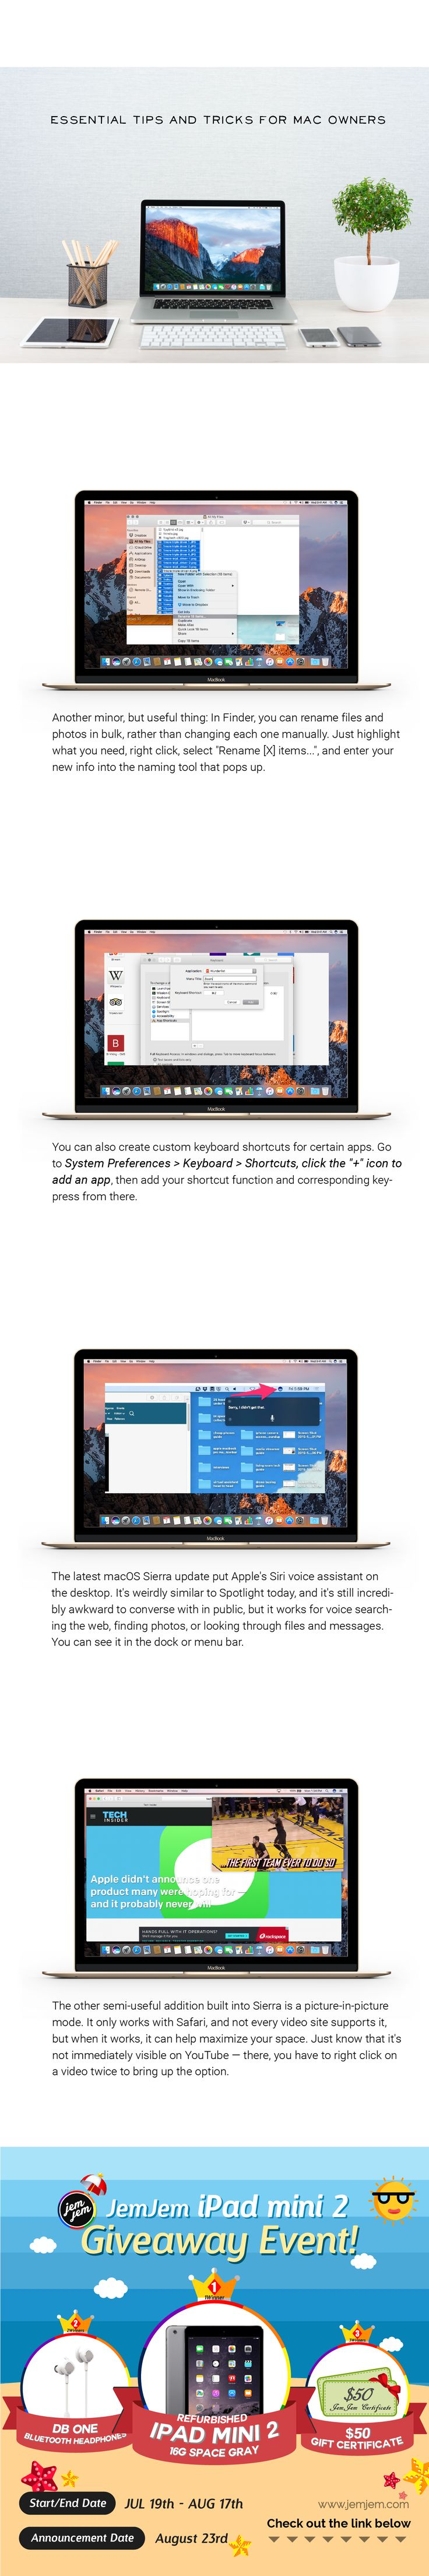 Pin by on apple tips Event giveaways, Summer